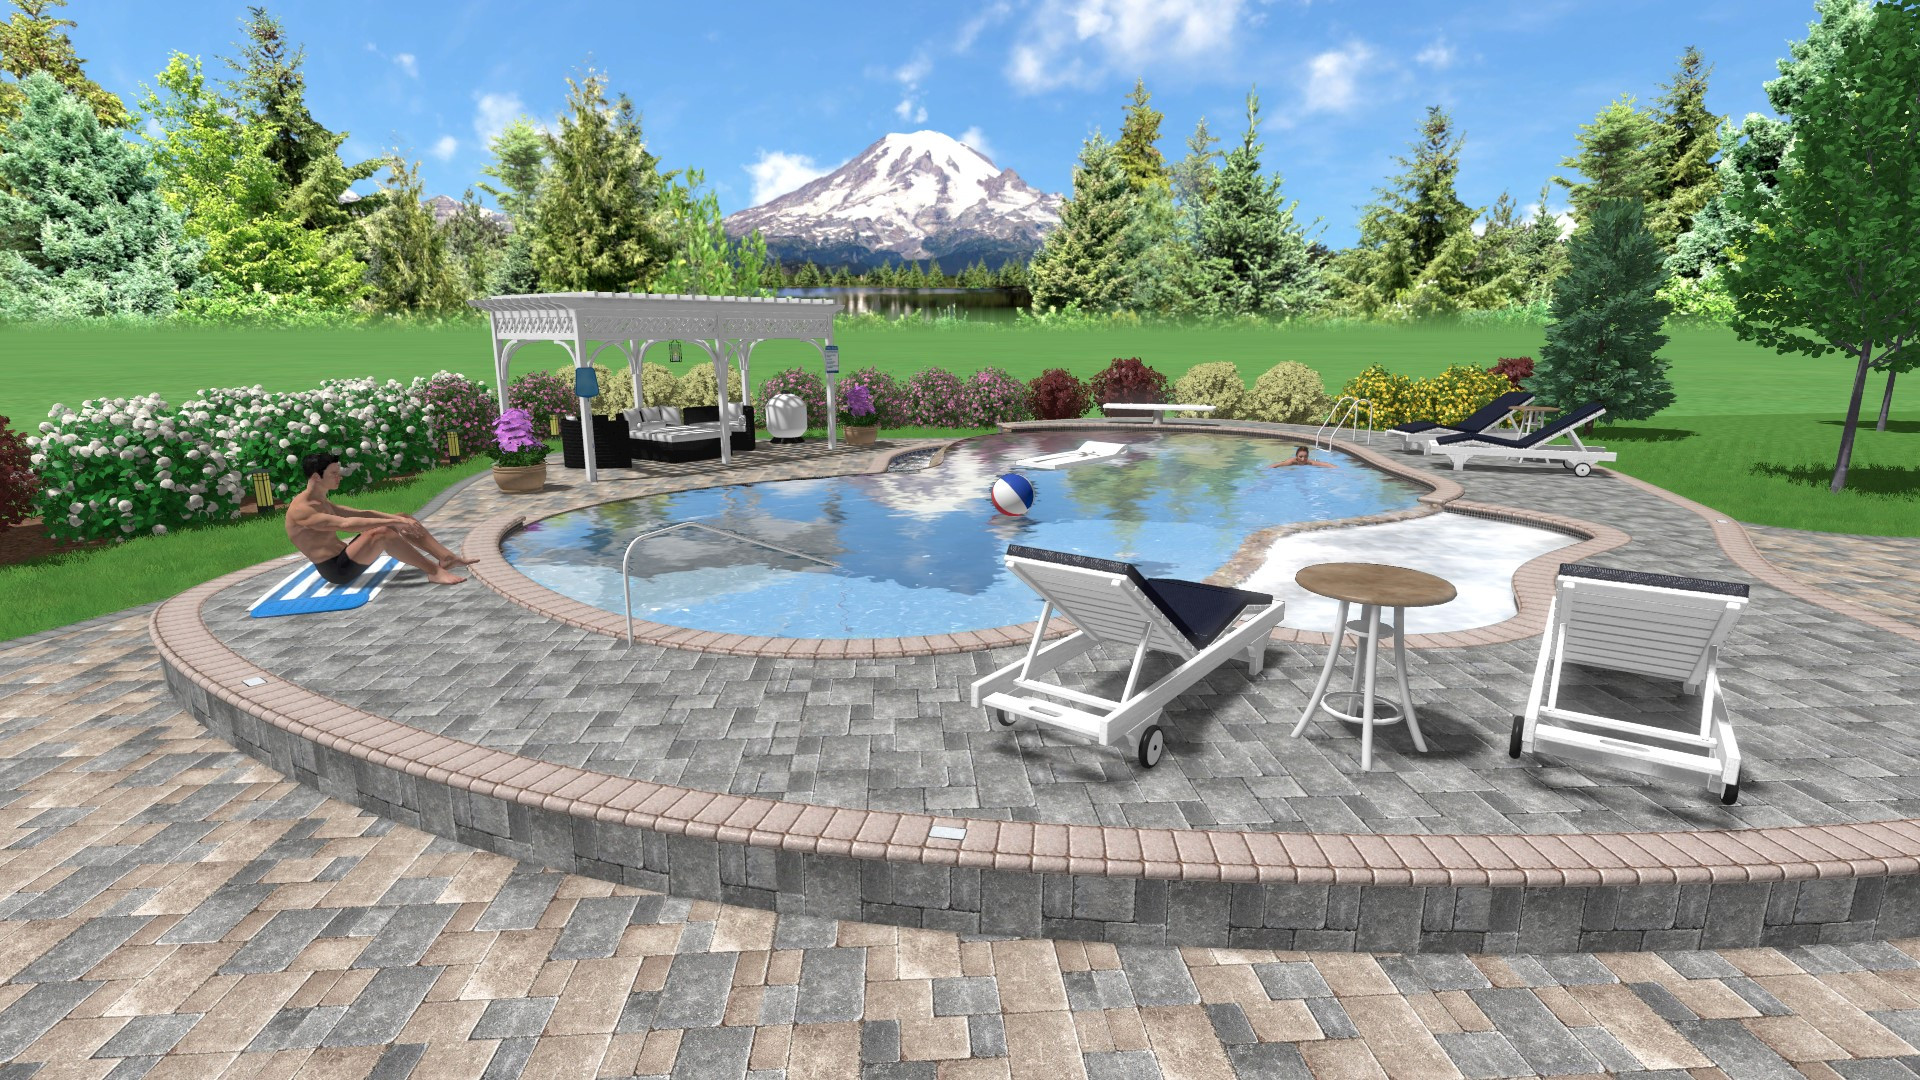 Best ideas about Pool Landscape Design . Save or Pin Landscape Design Software Gallery Now.